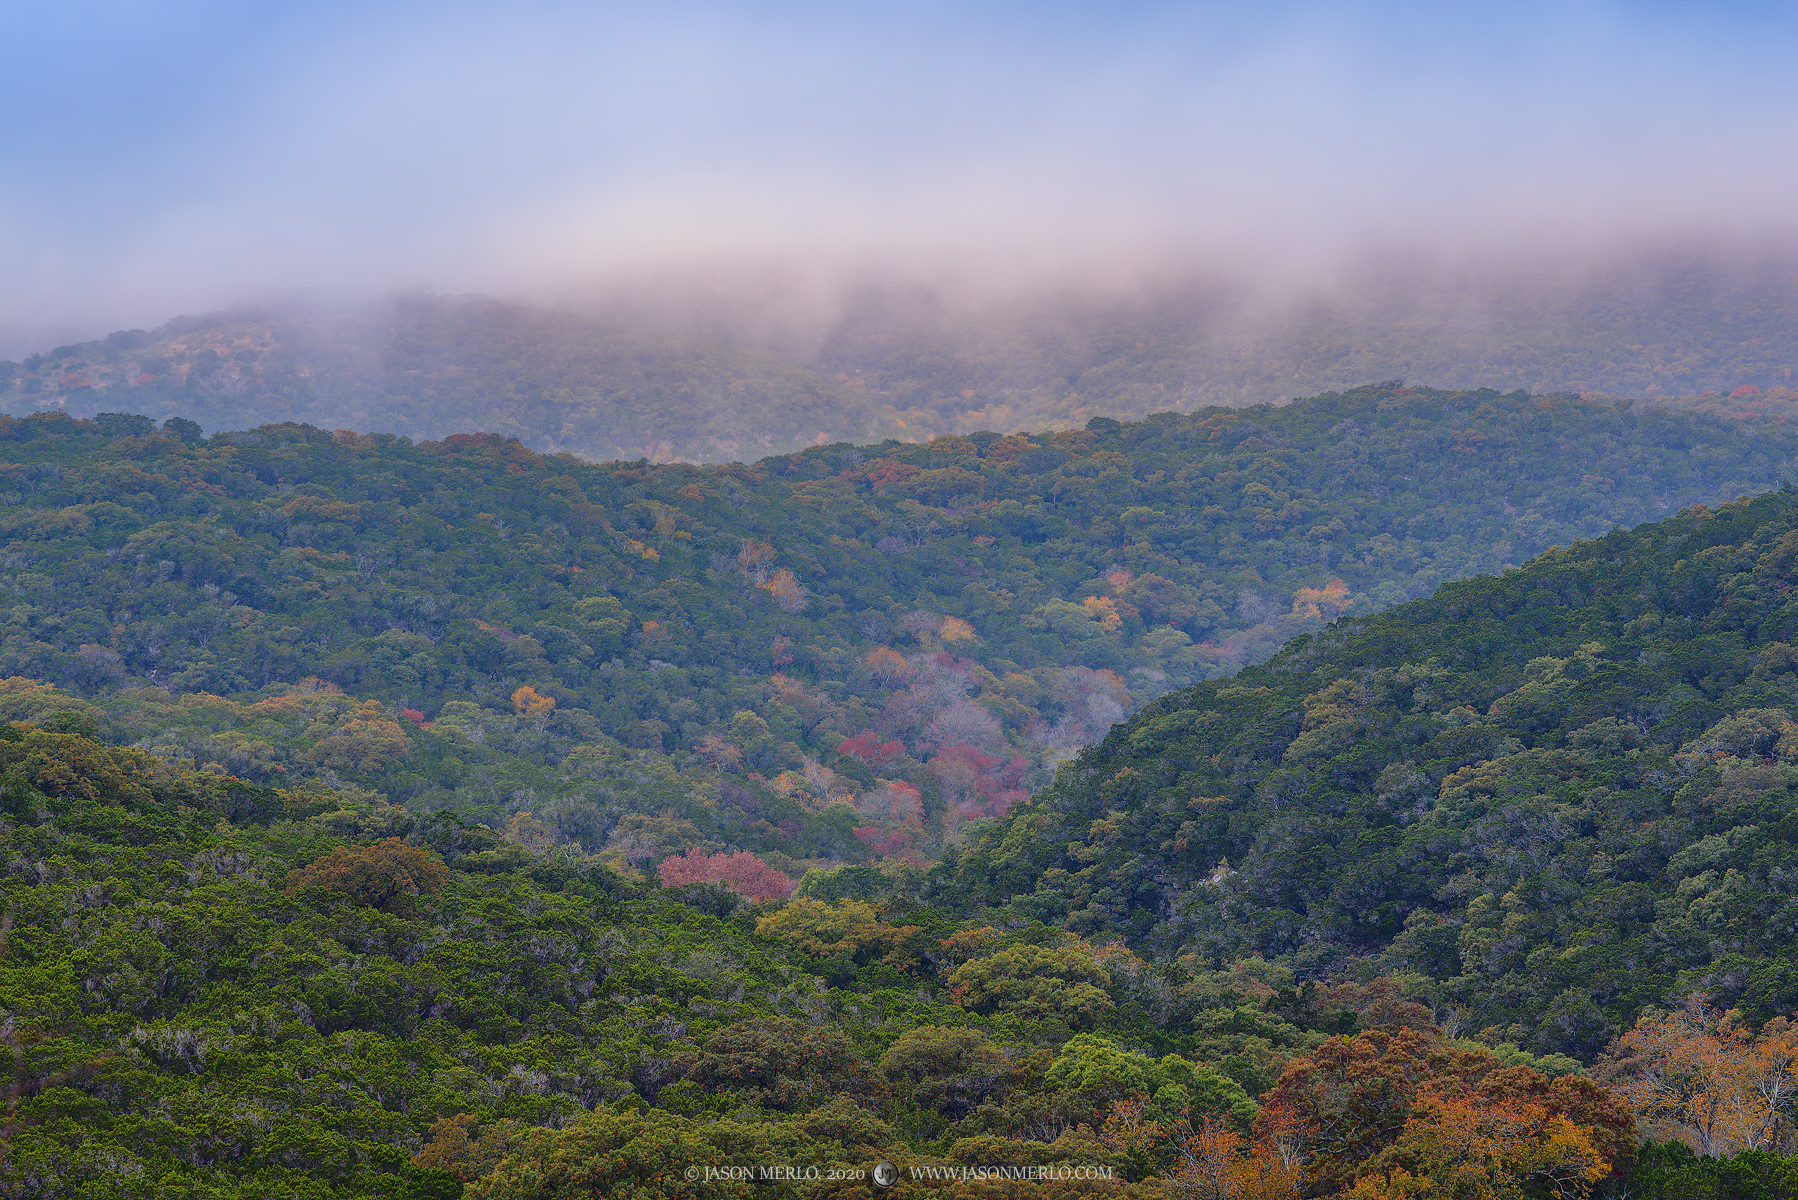 Fog covered hills dotted with fall foliage in Real County, Texas.